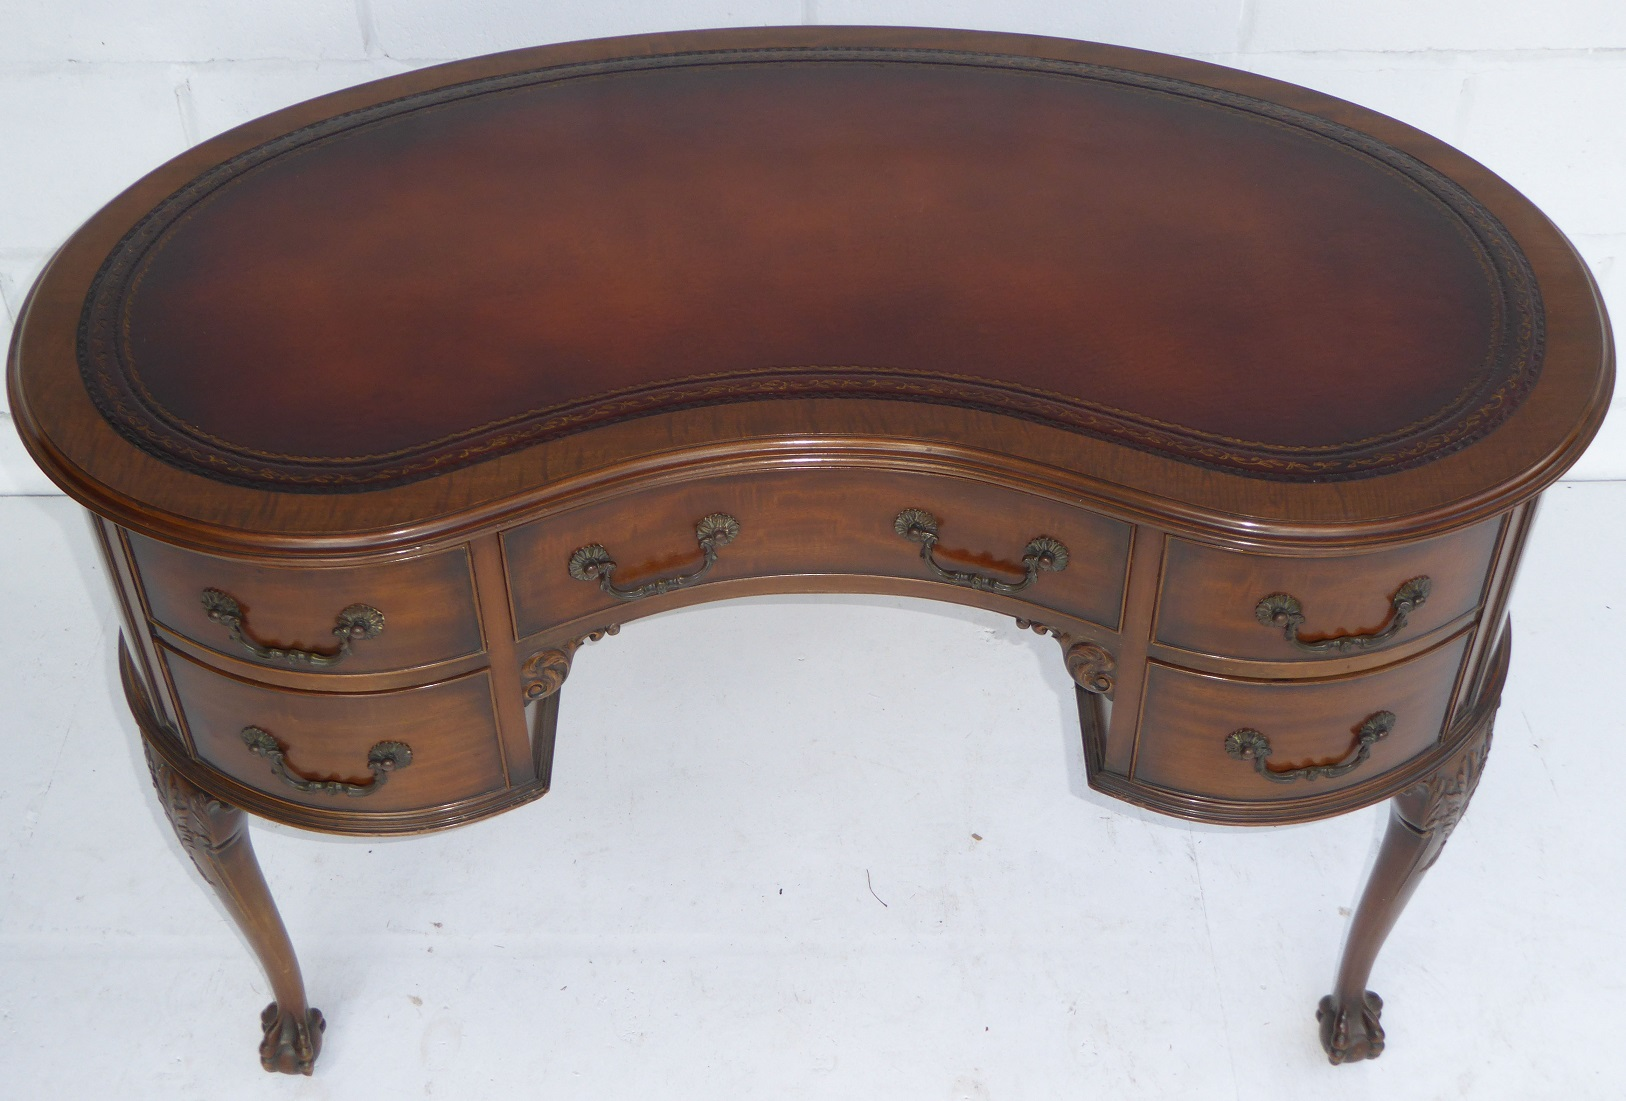 Edwardian Kidney Shaped Desk By Waring And Gillows